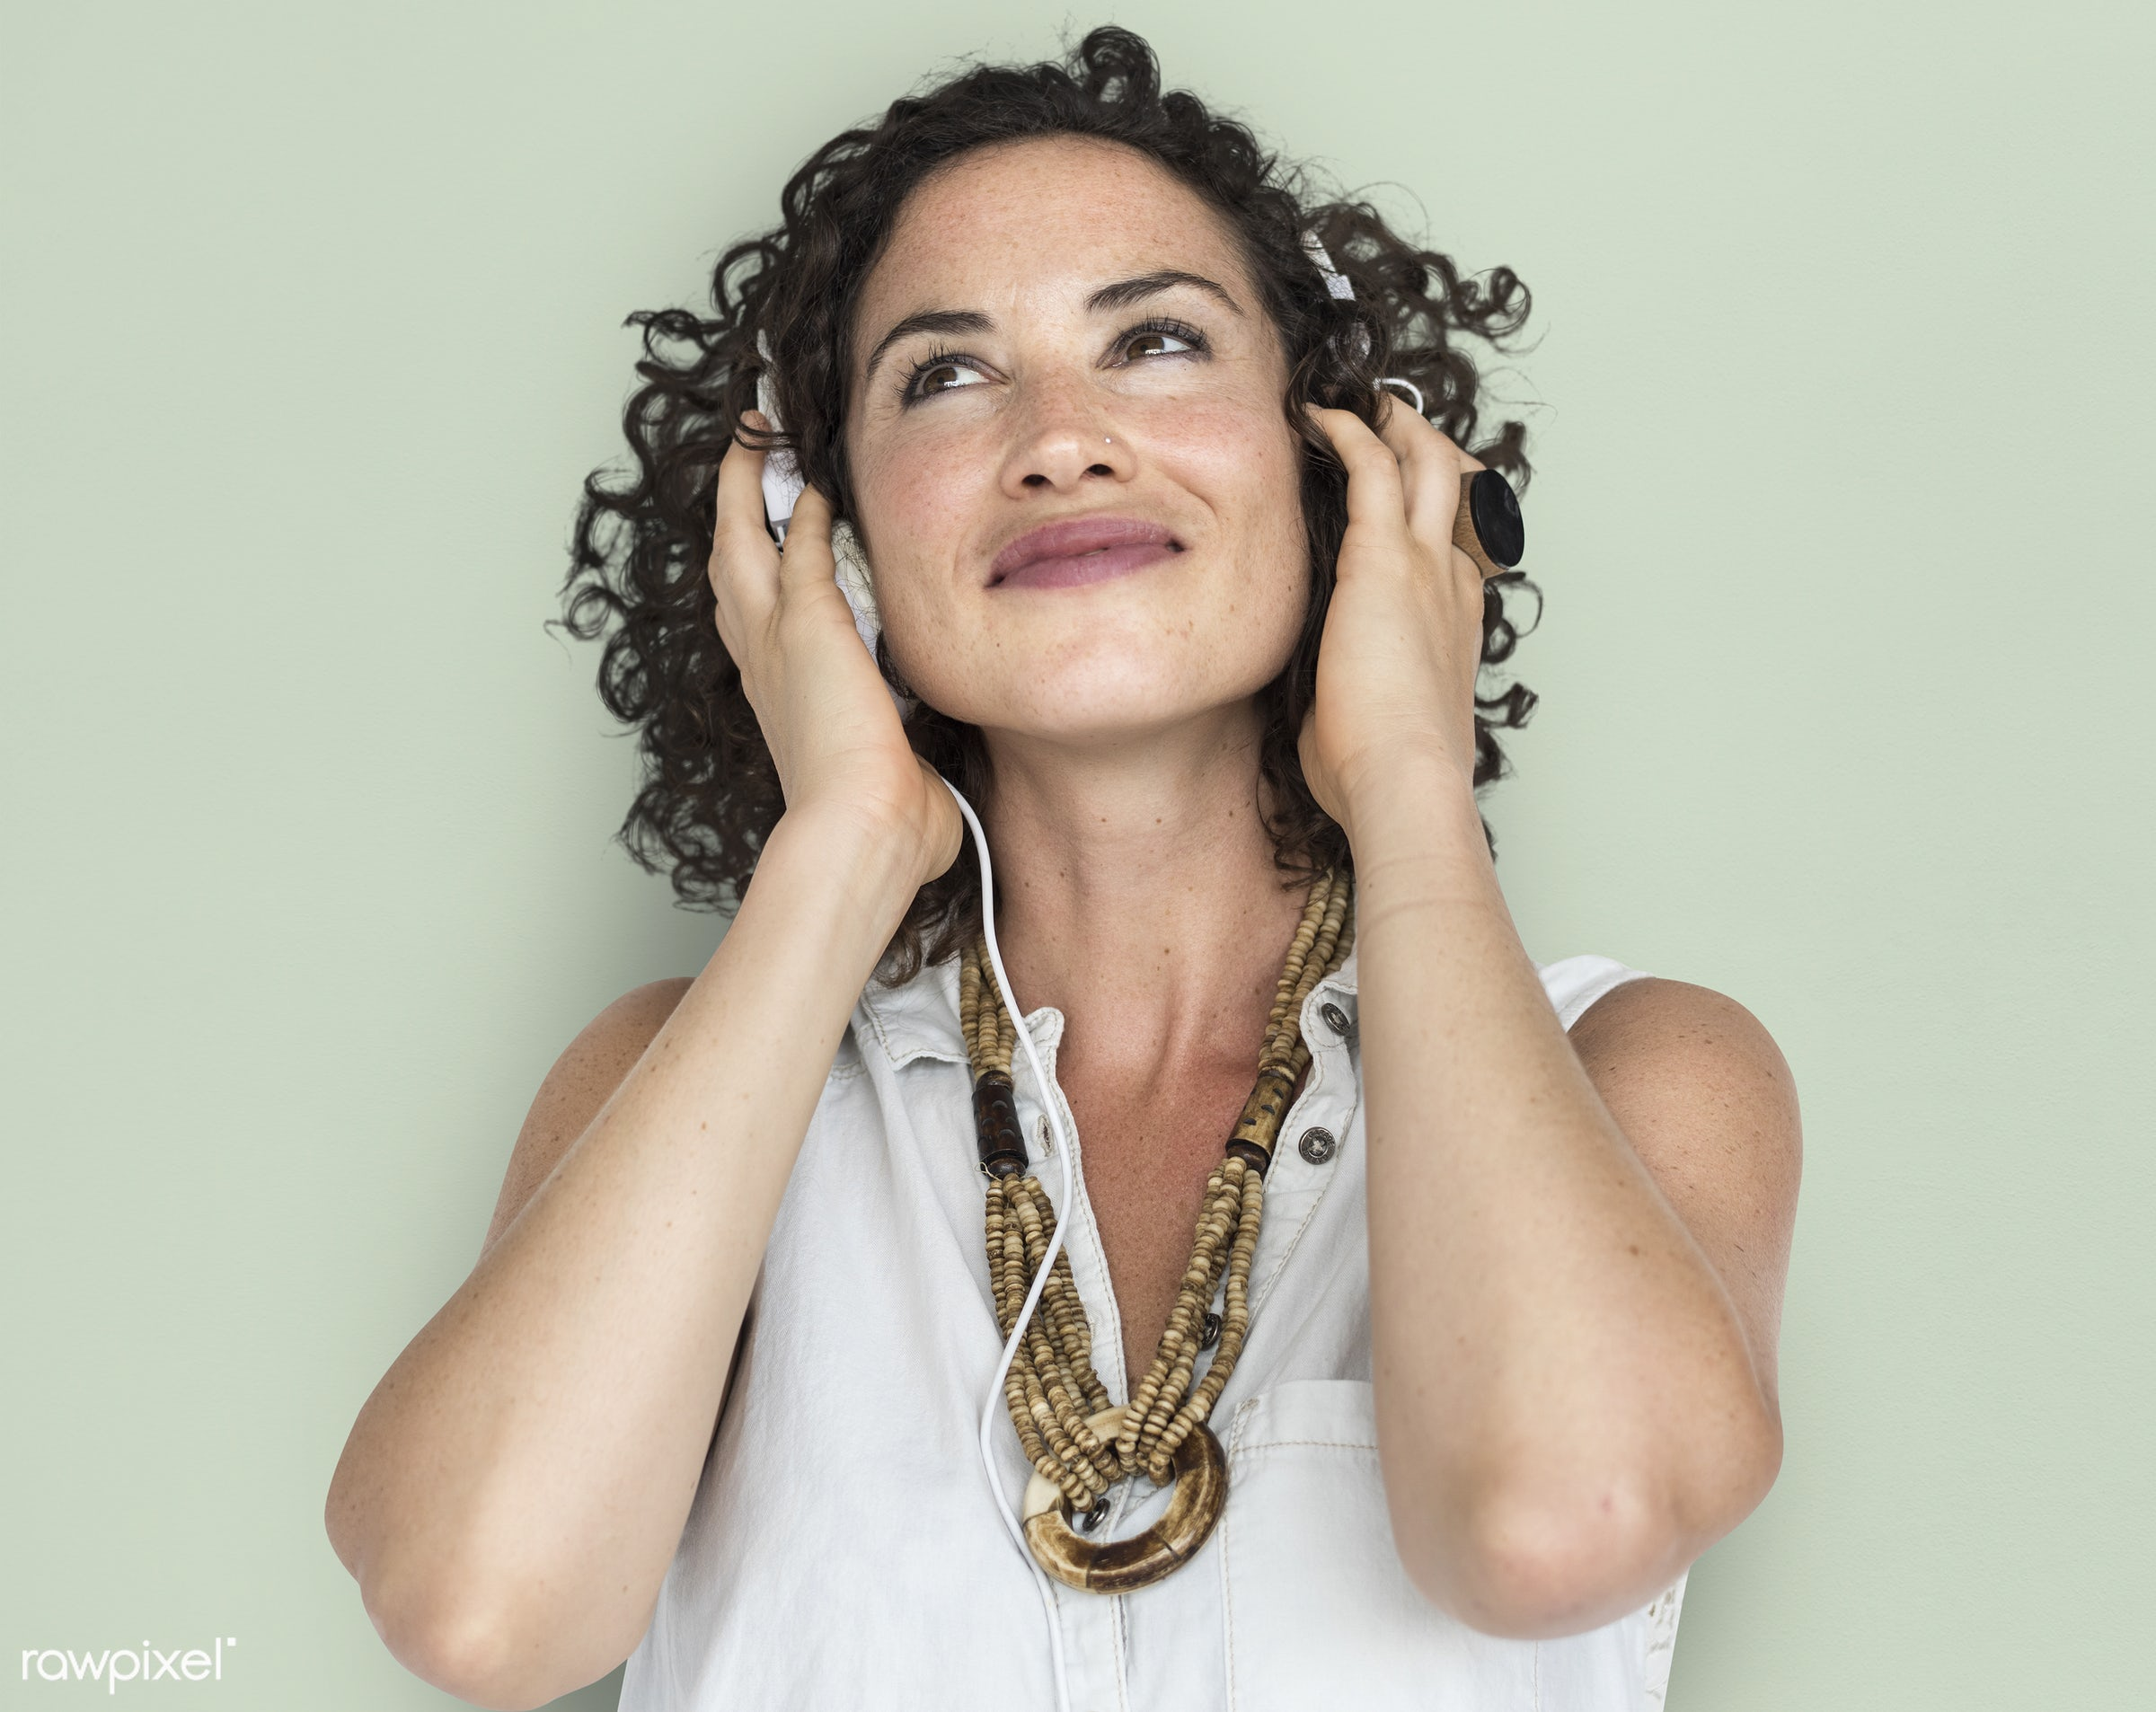 studio, pastel, model, person, people, race, headphone, style, woman, lifestyle, casual, beige, feminism, playlist, music,...